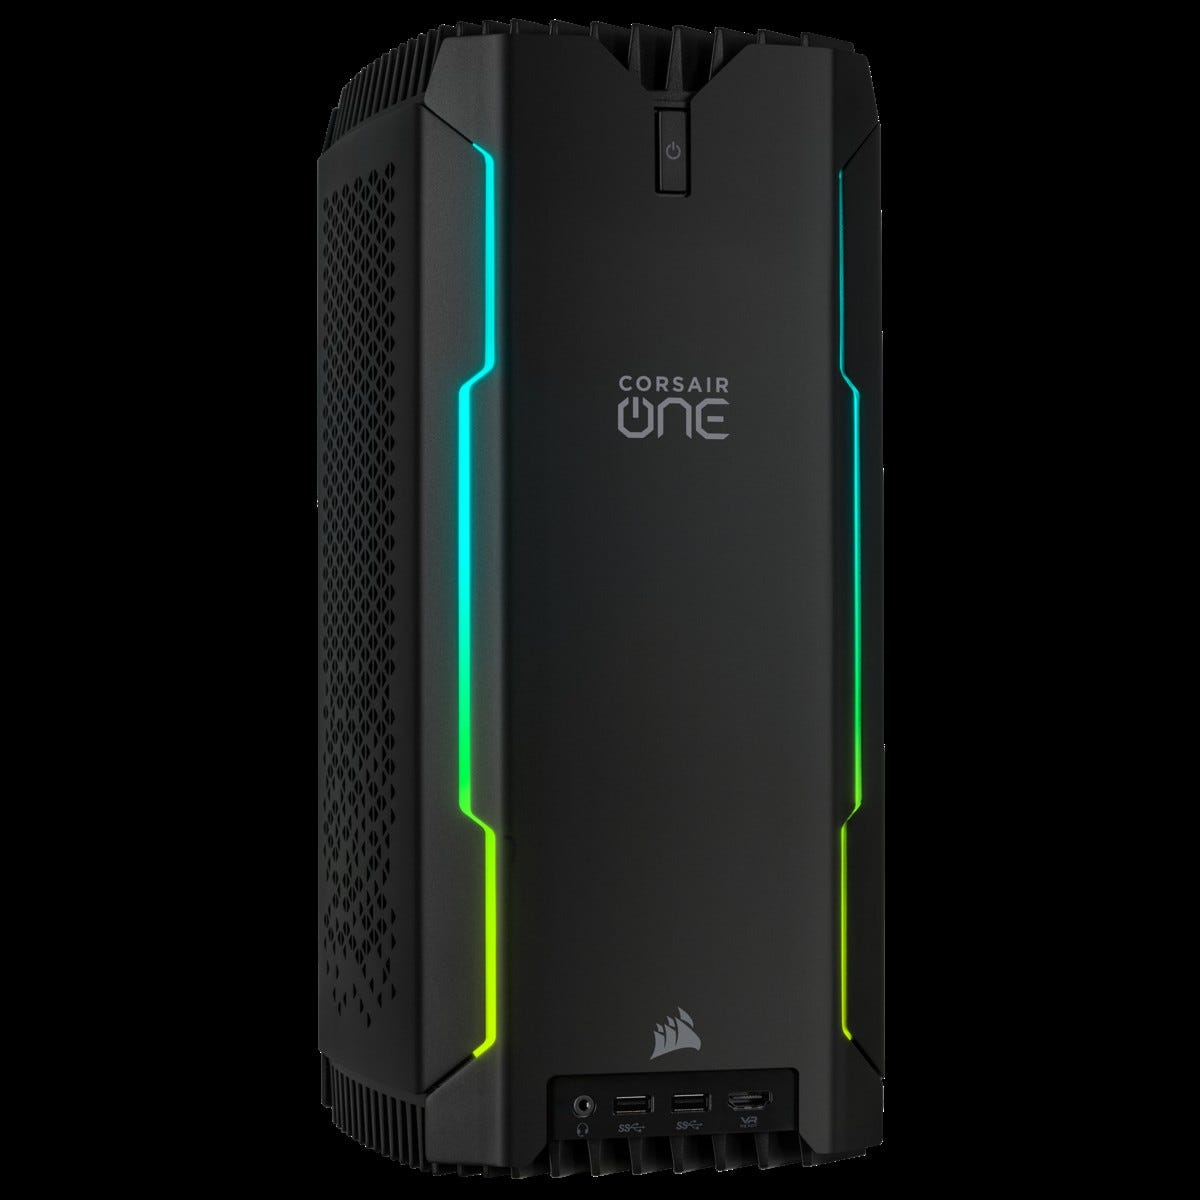 The Corsair One is a tiny PC with full desktop gaming power.